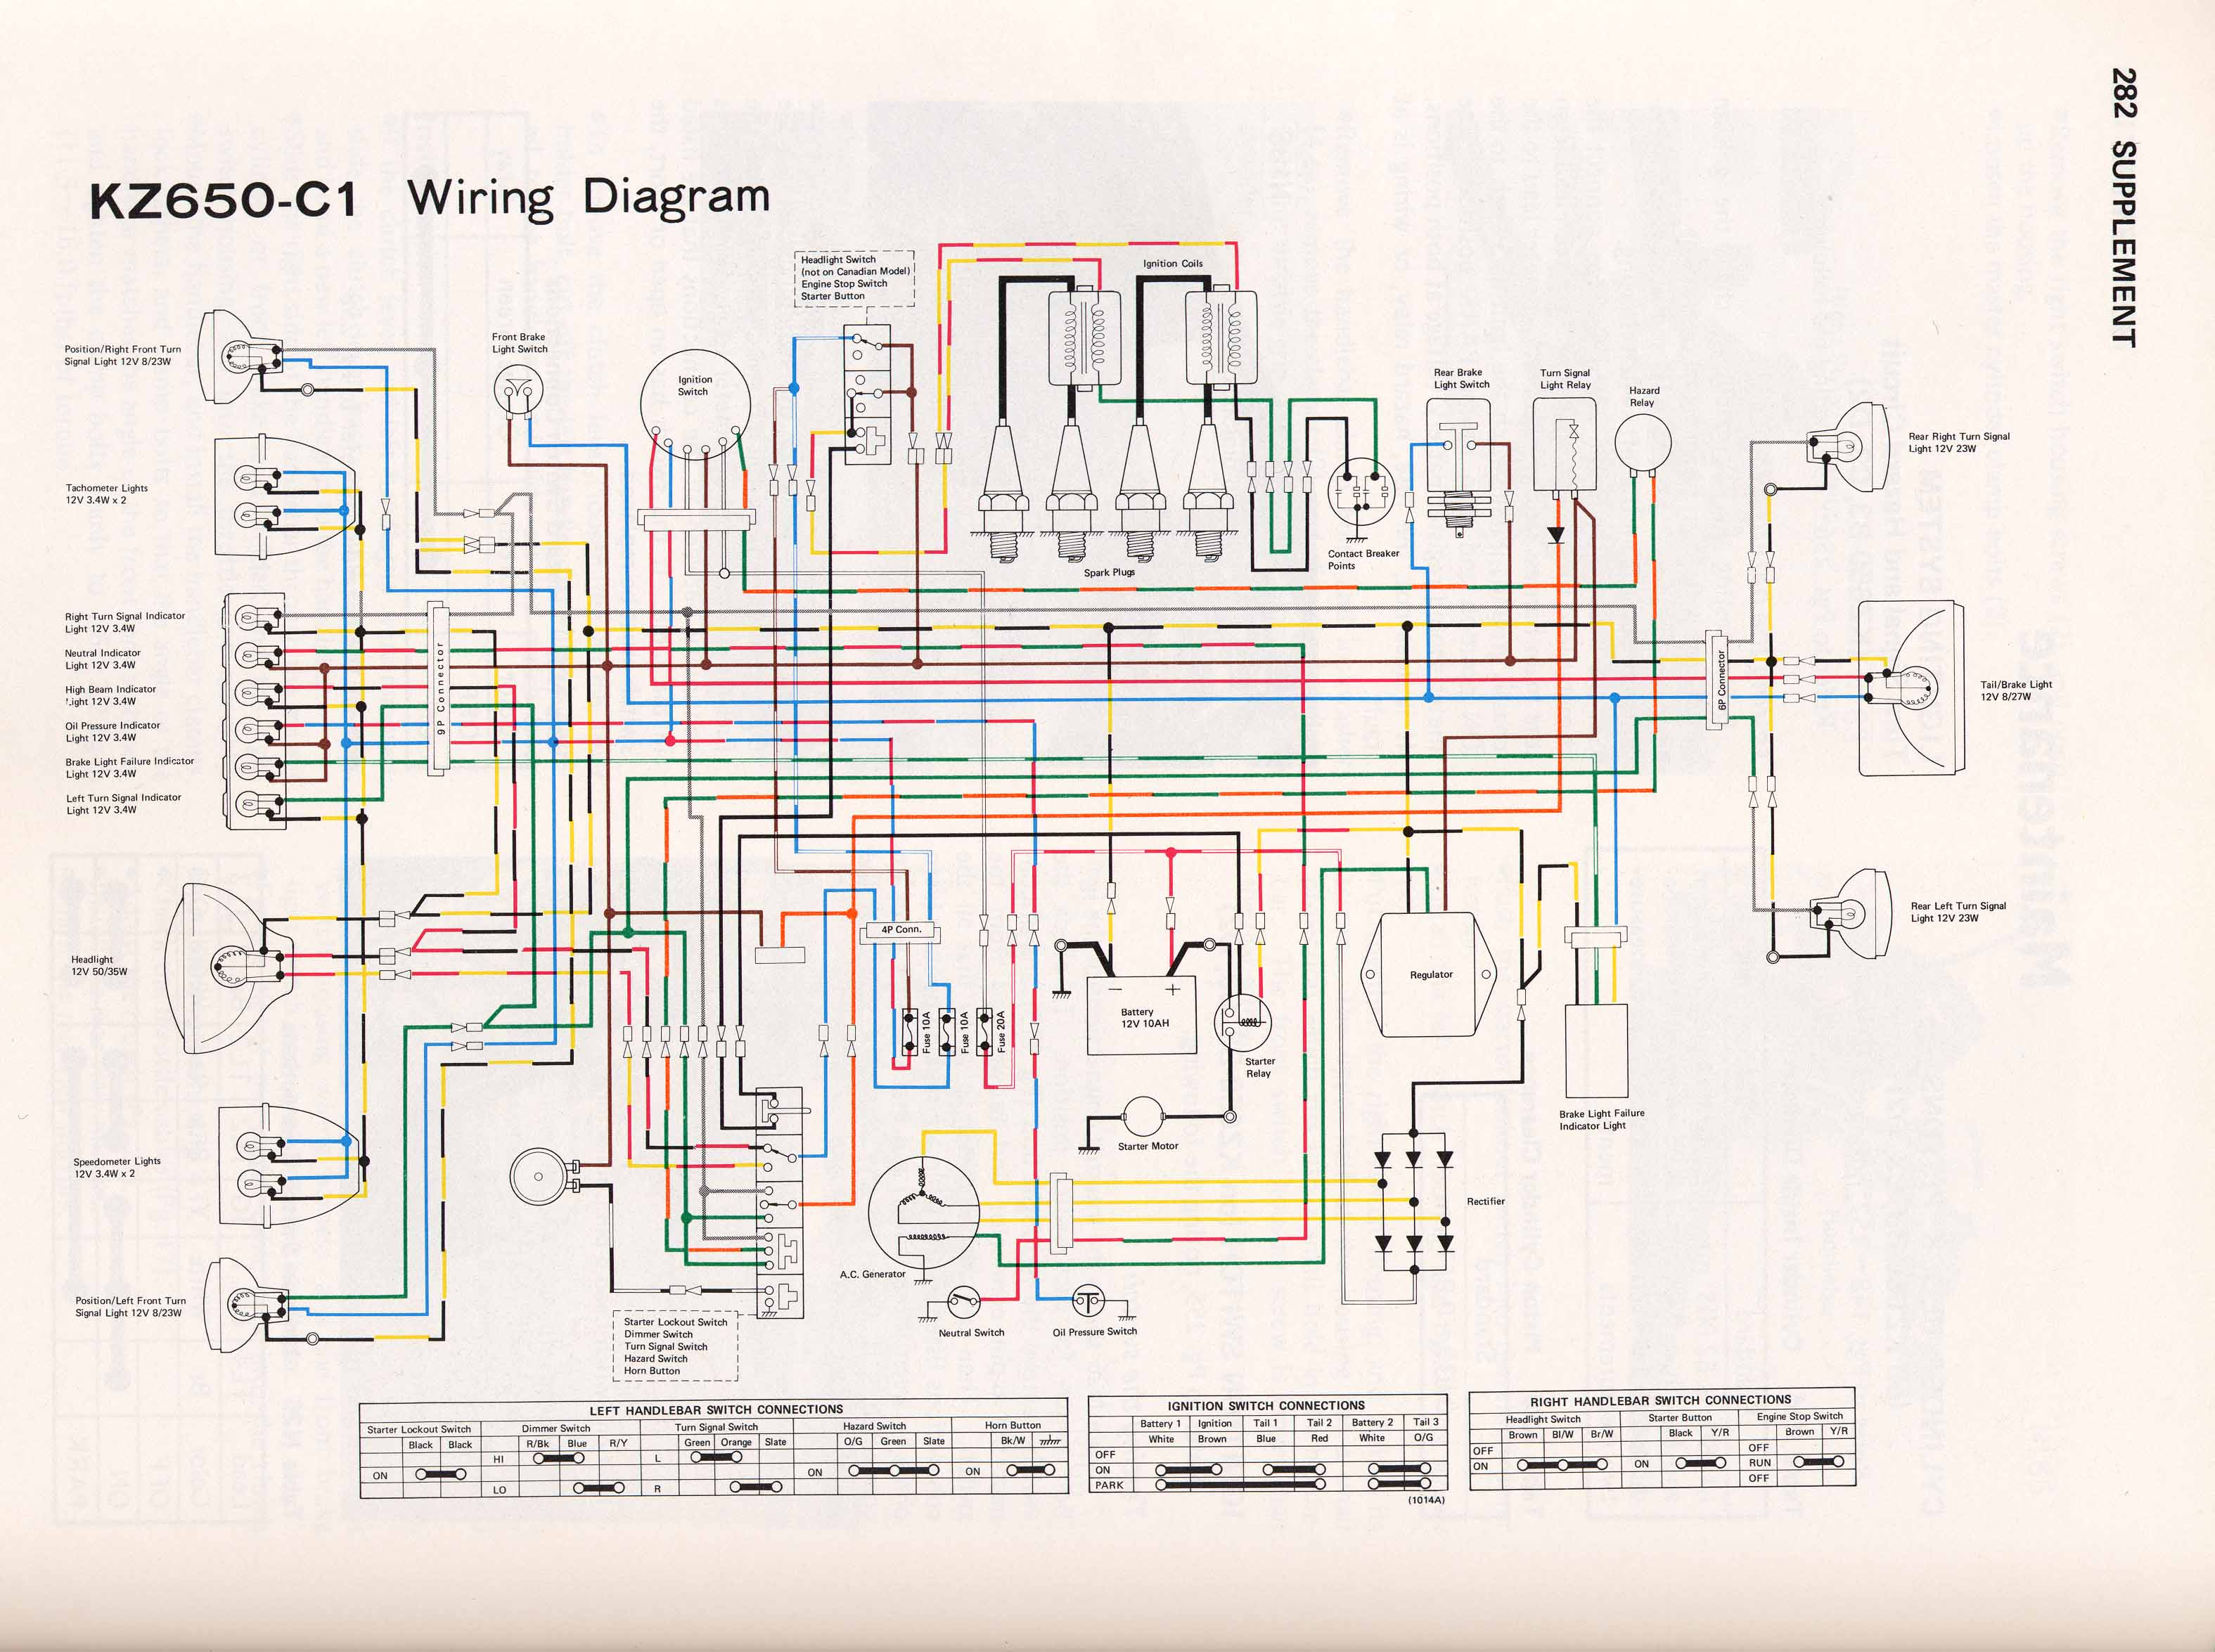 Er6n Wiring Diagram Simple Electrical Zx7r Series And Parallel Circuits Diagrams Battery Kawasaki Er 6